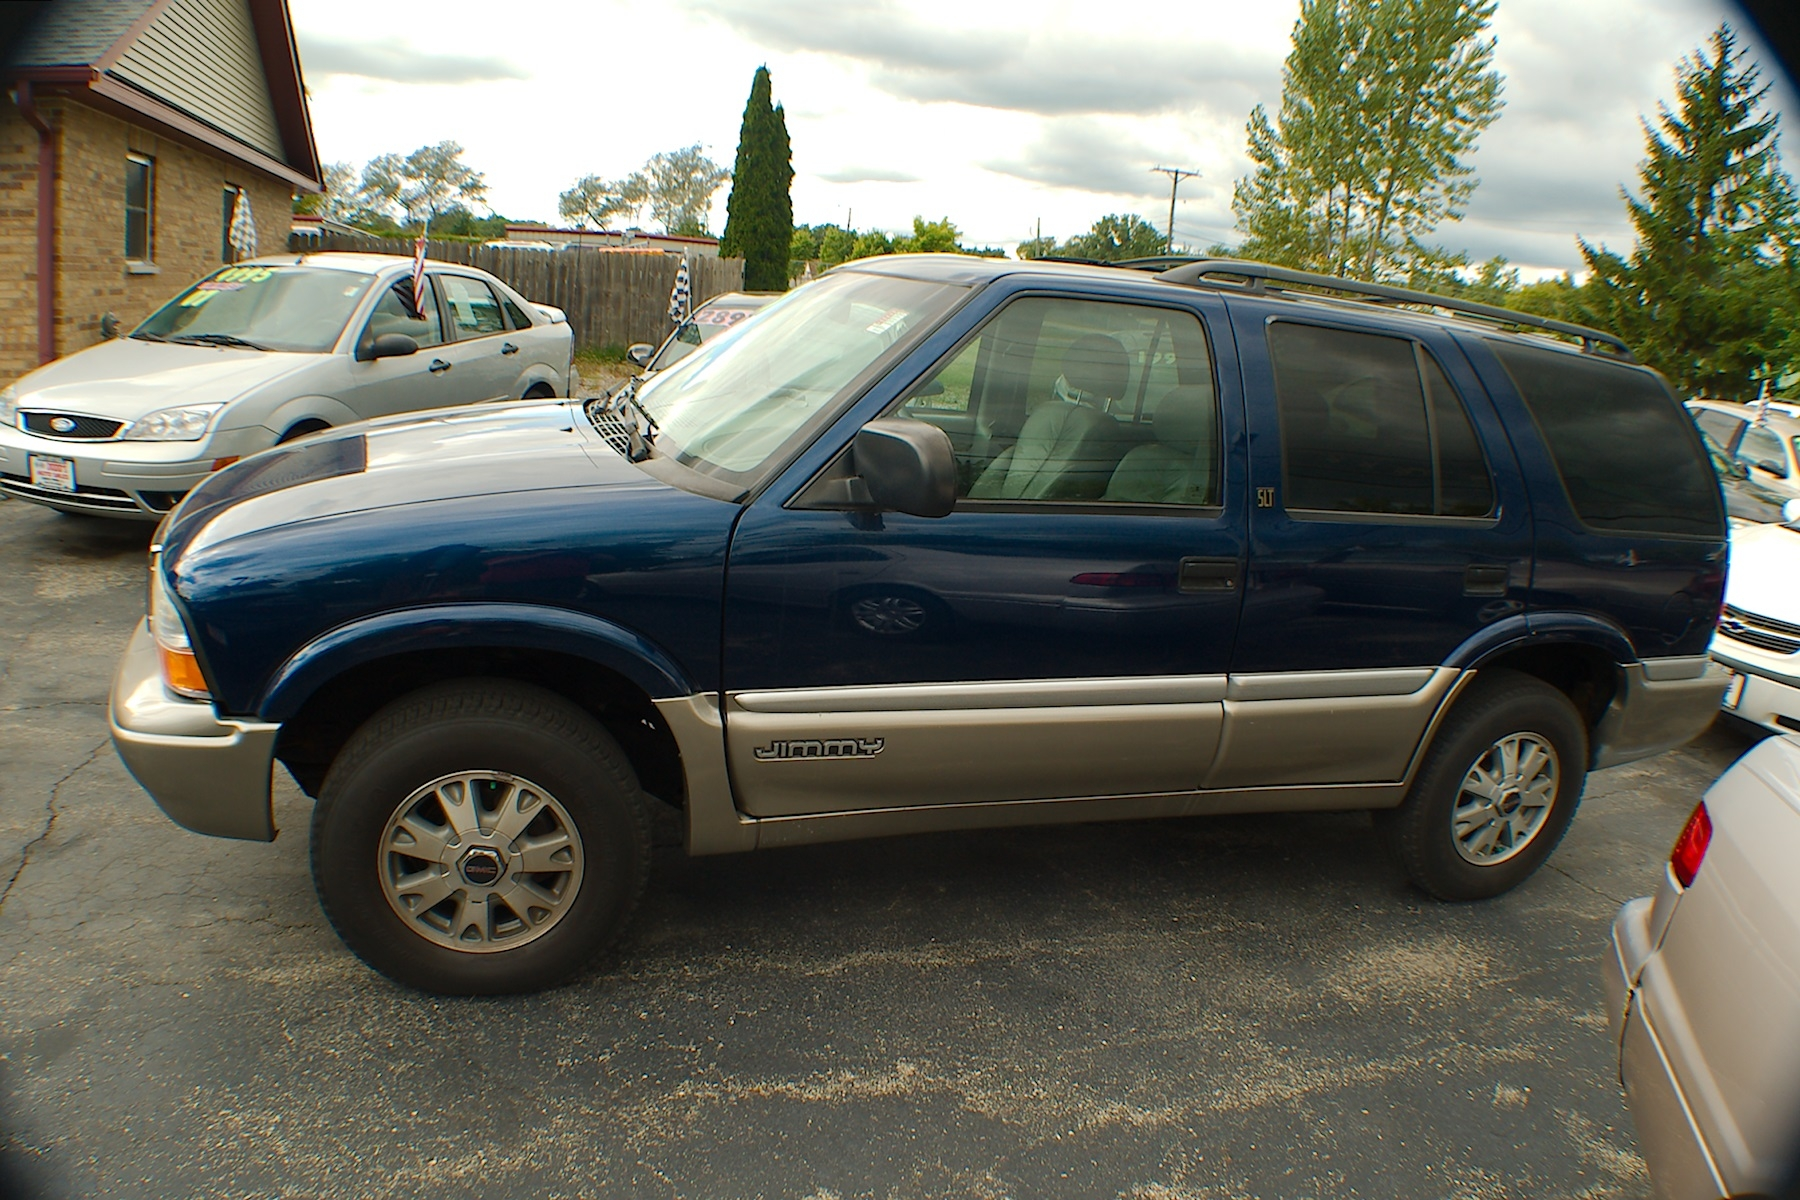 2001 GMC Jimmy SLT 4x4 Blue Used SUV Sale Antioch Zion Waukegan Lake County Illinois